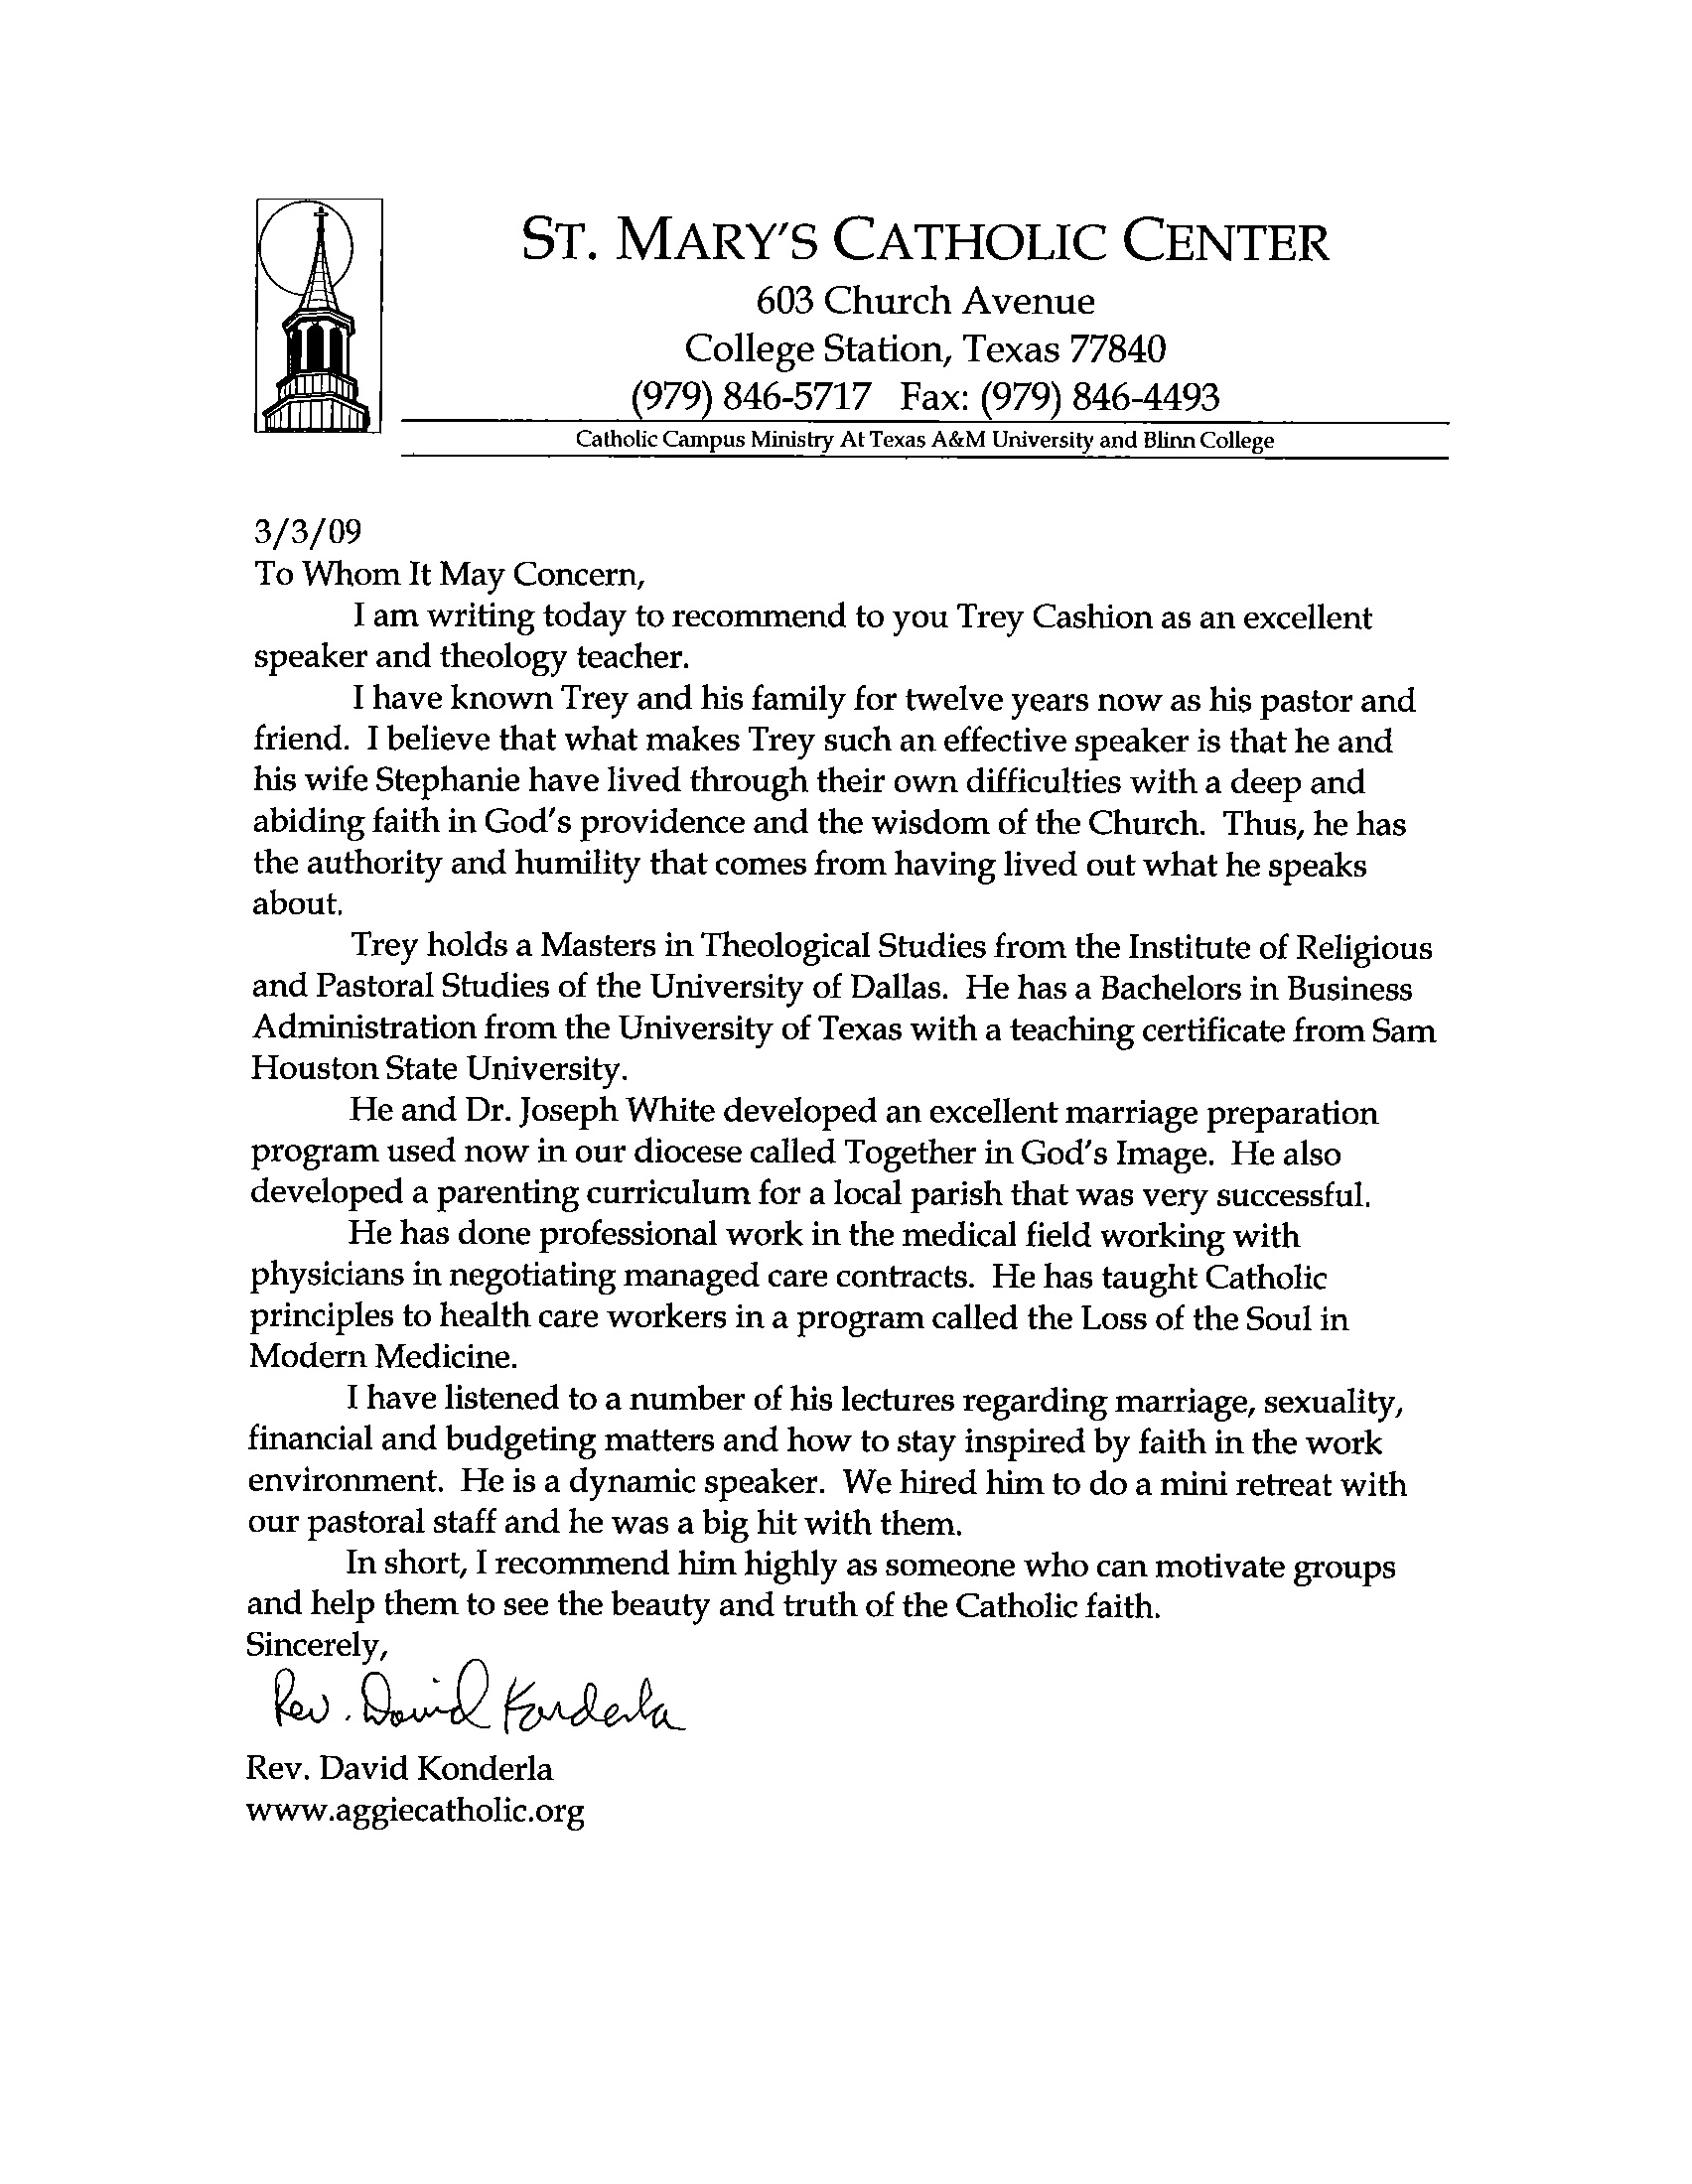 Recommendation Letter From Fr. David Konderla, Pastor At St. Maryu0027s  Catholic Center In College Station, TX